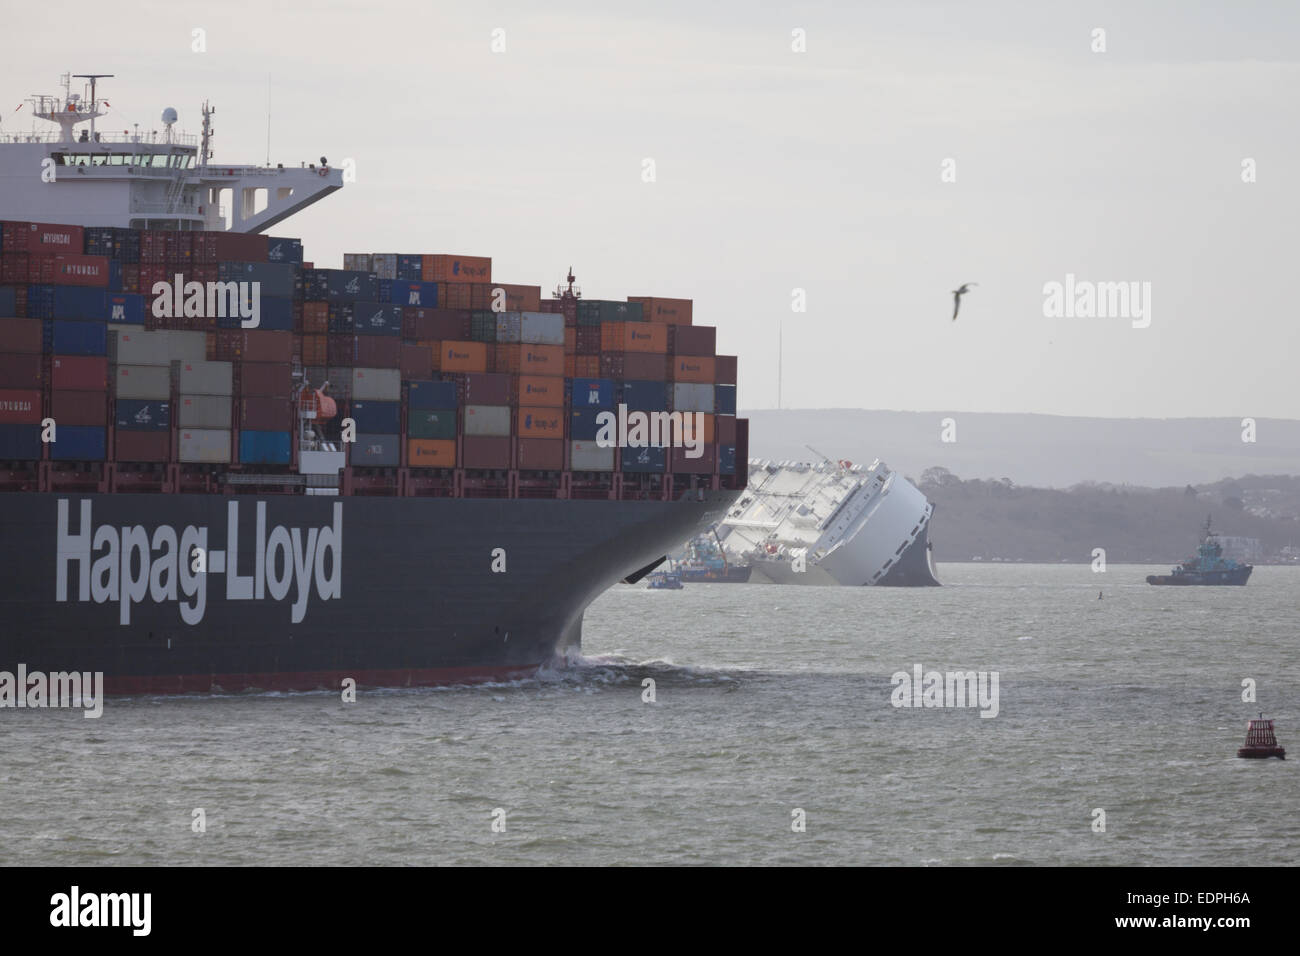 The Hapag-Lloyds cargo ship, Essen Express departing Southampton, about to pass the stricken ship, Hoegh Osaka in - Stock Image